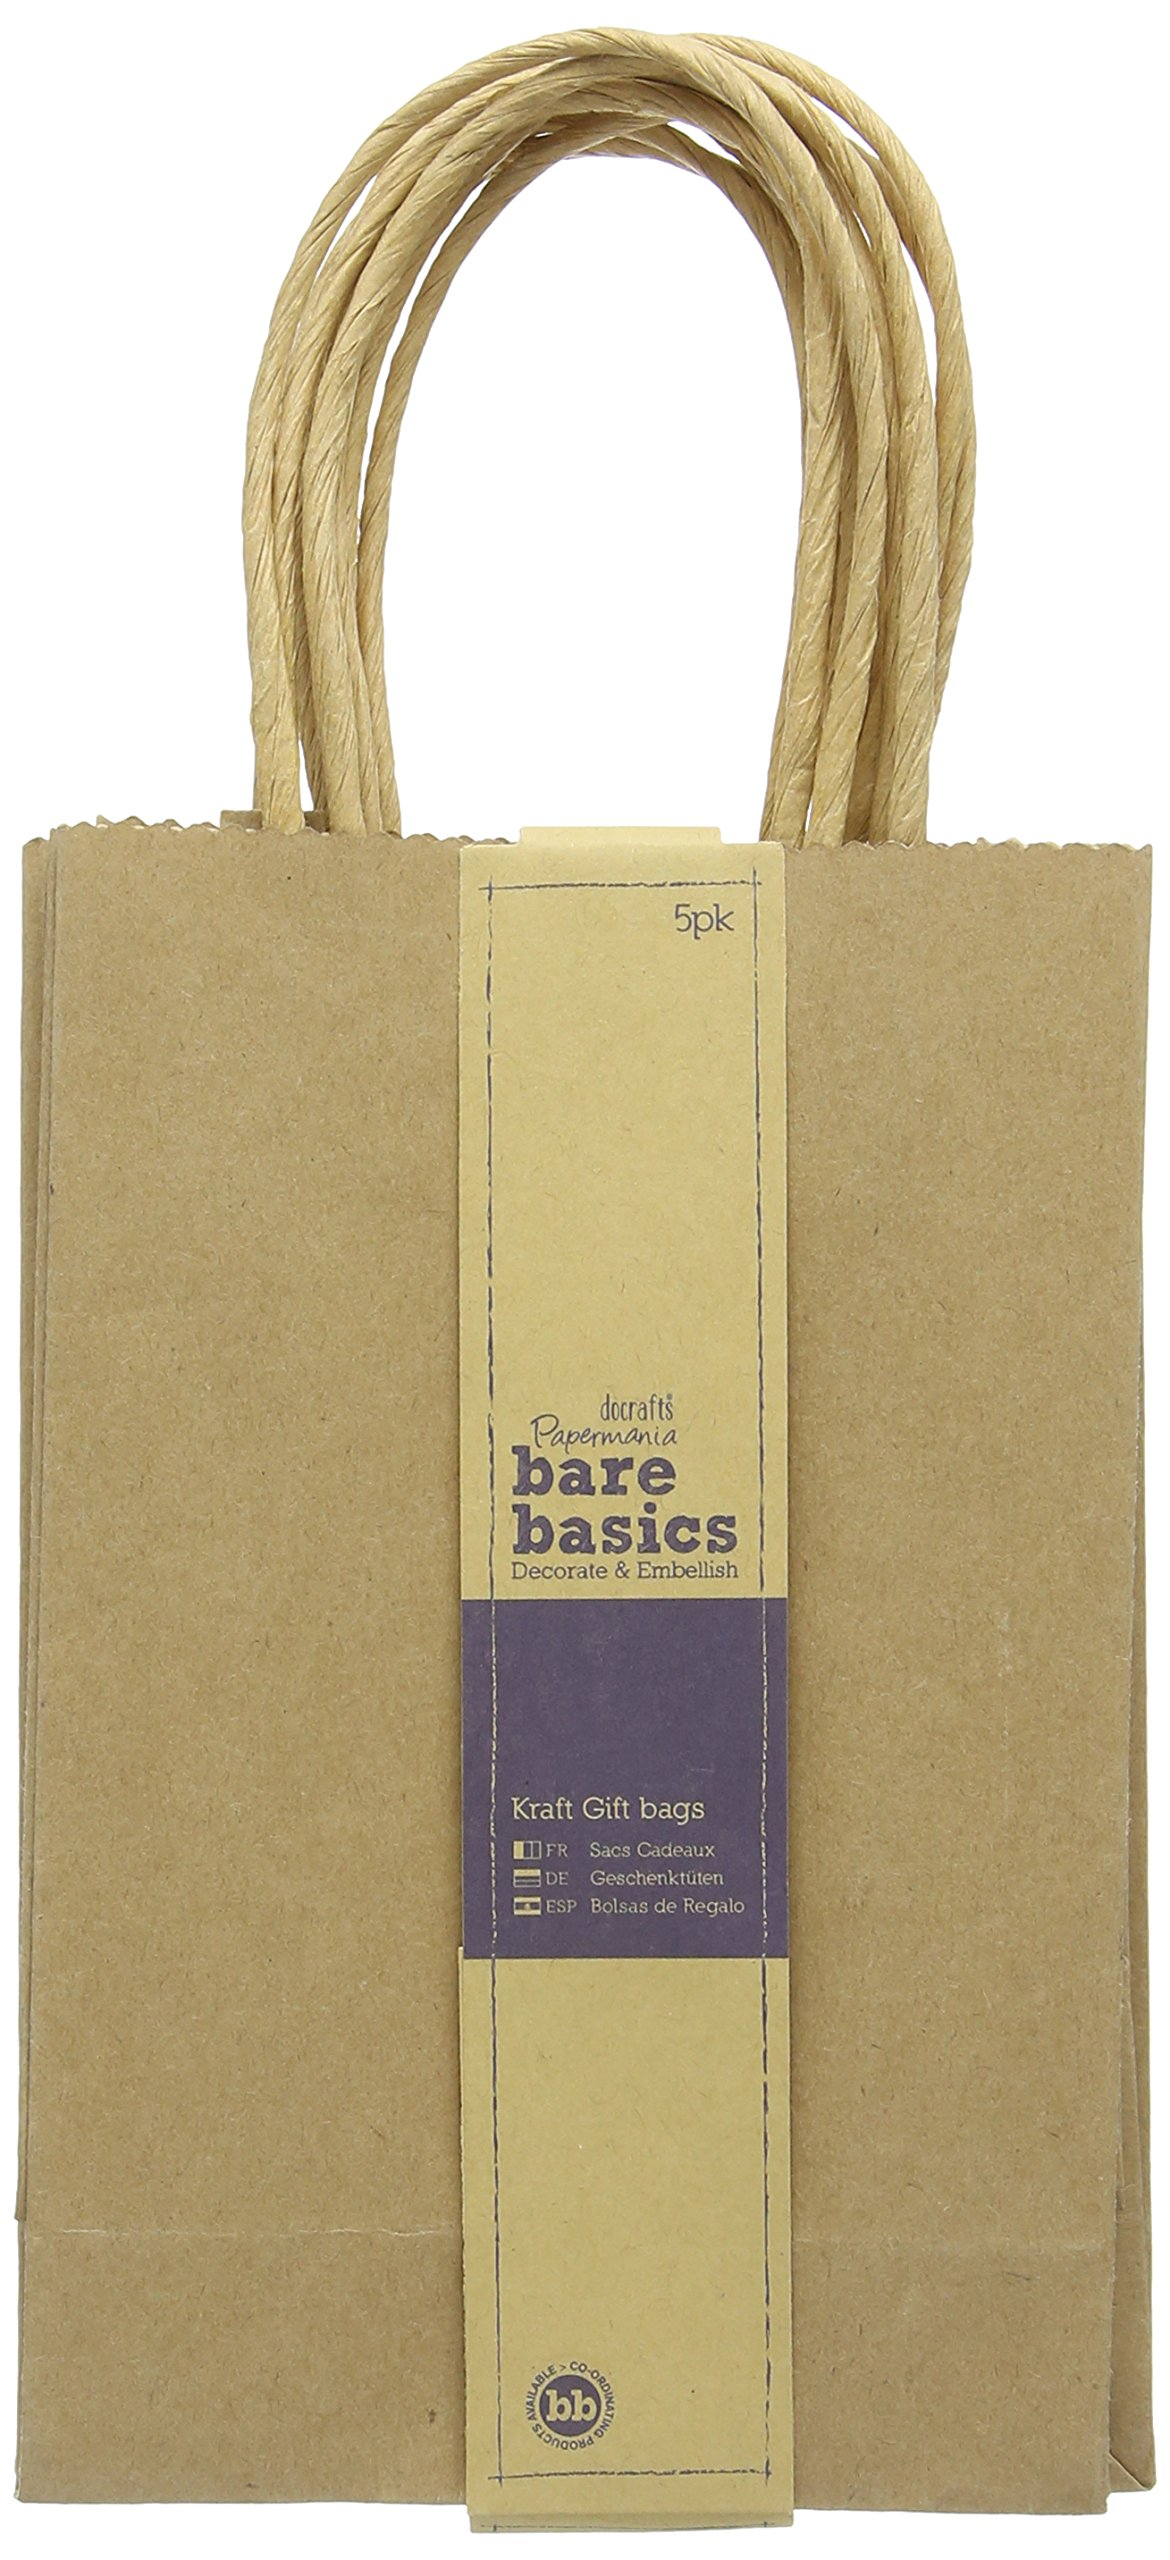 Plain gift bags amazon docrafts papermania bare basics pack of 5 kraft gift bags small negle Images